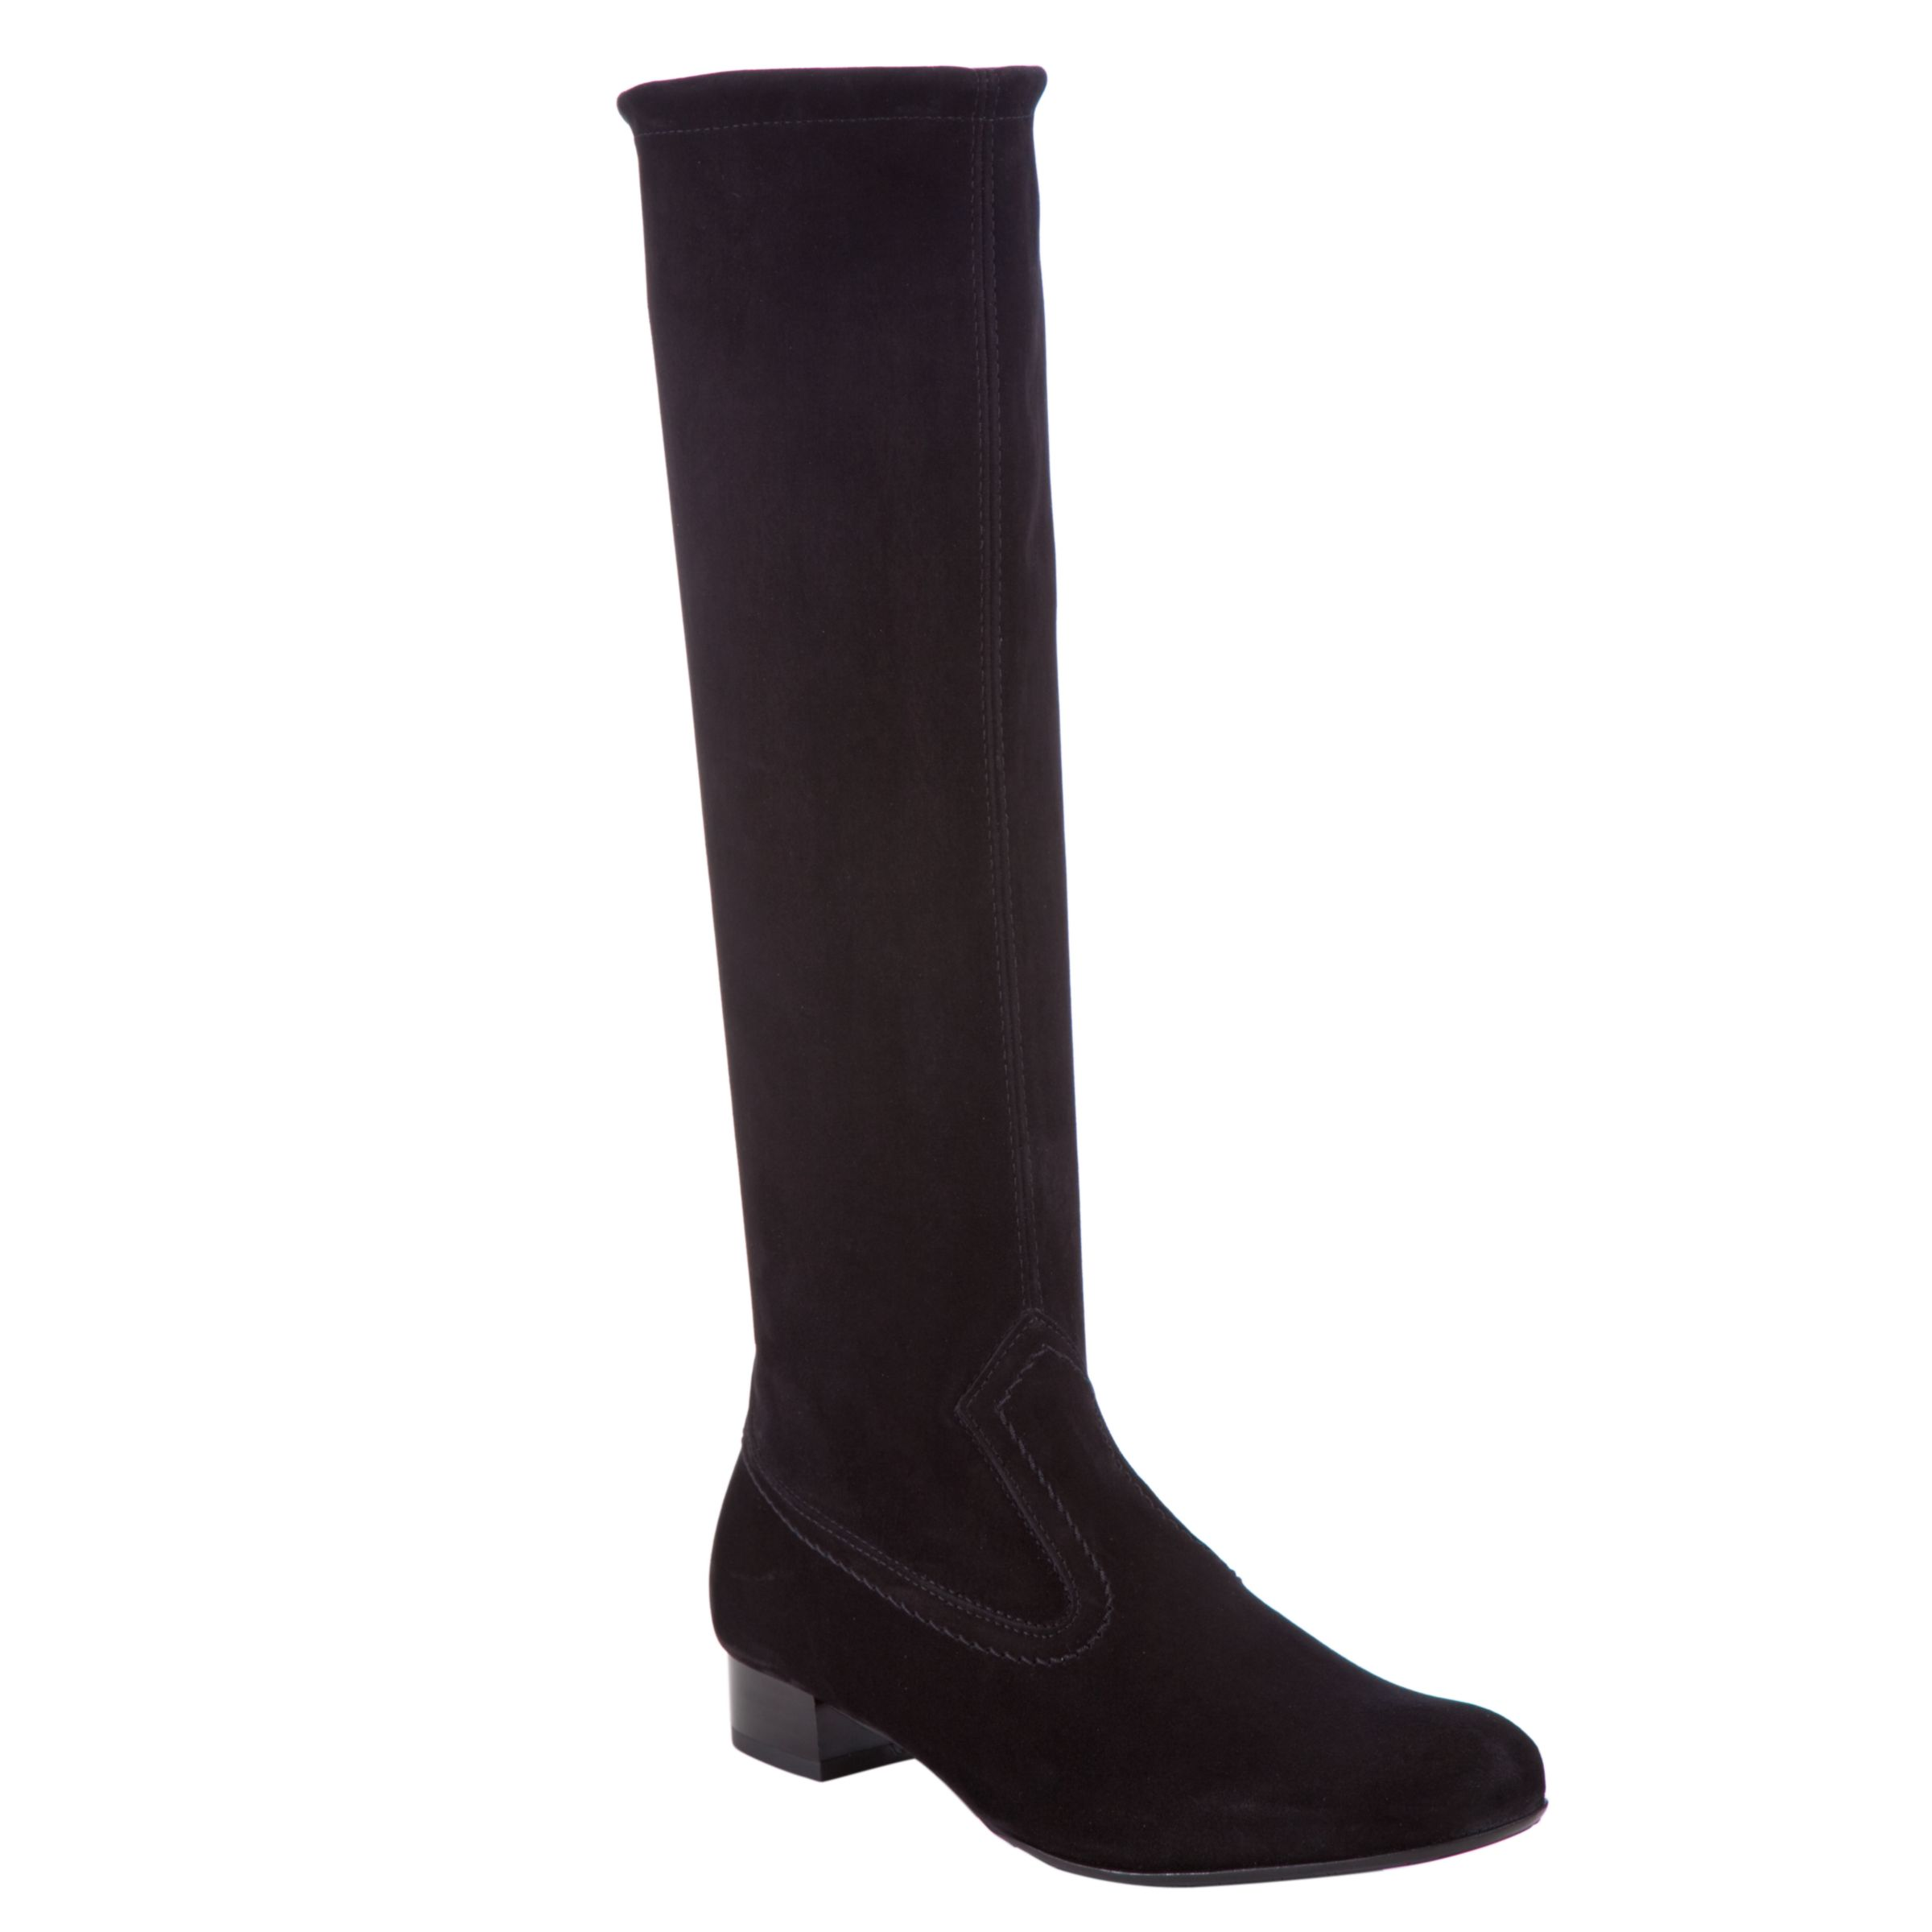 Peter Kaiser Fina Suede Stretch Knee High Boots, Black at John Lewis